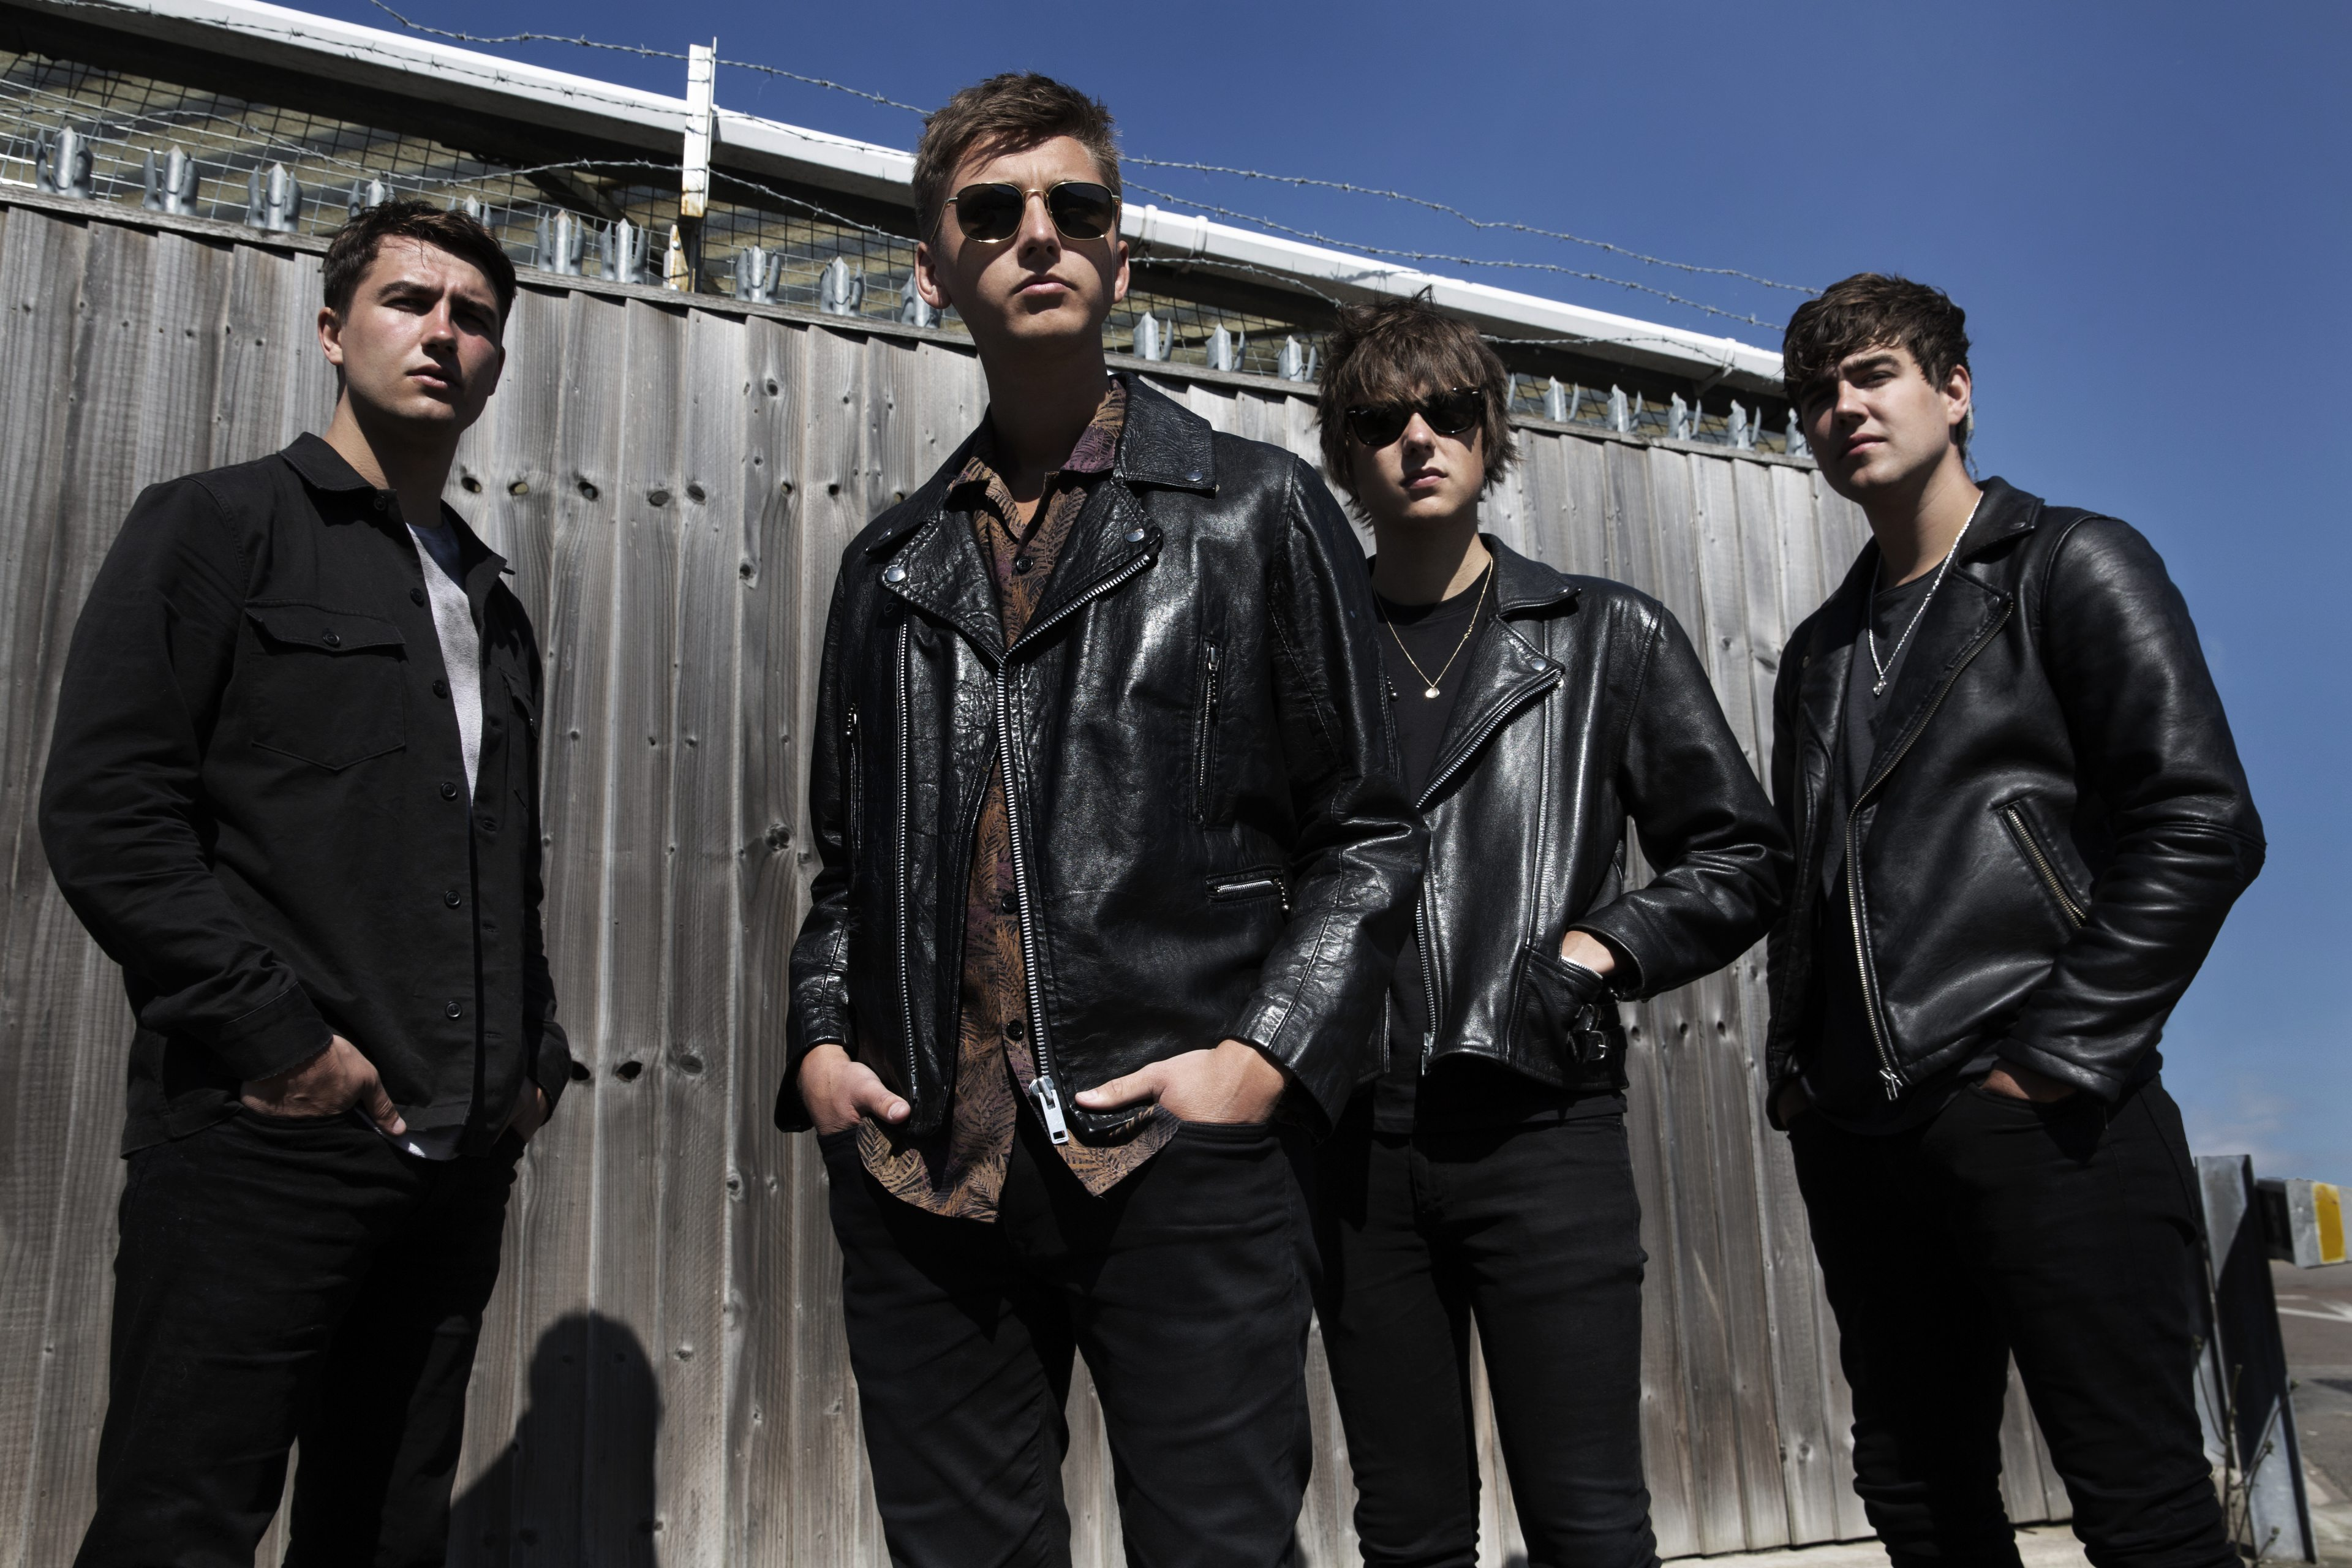 The Sherlocks image